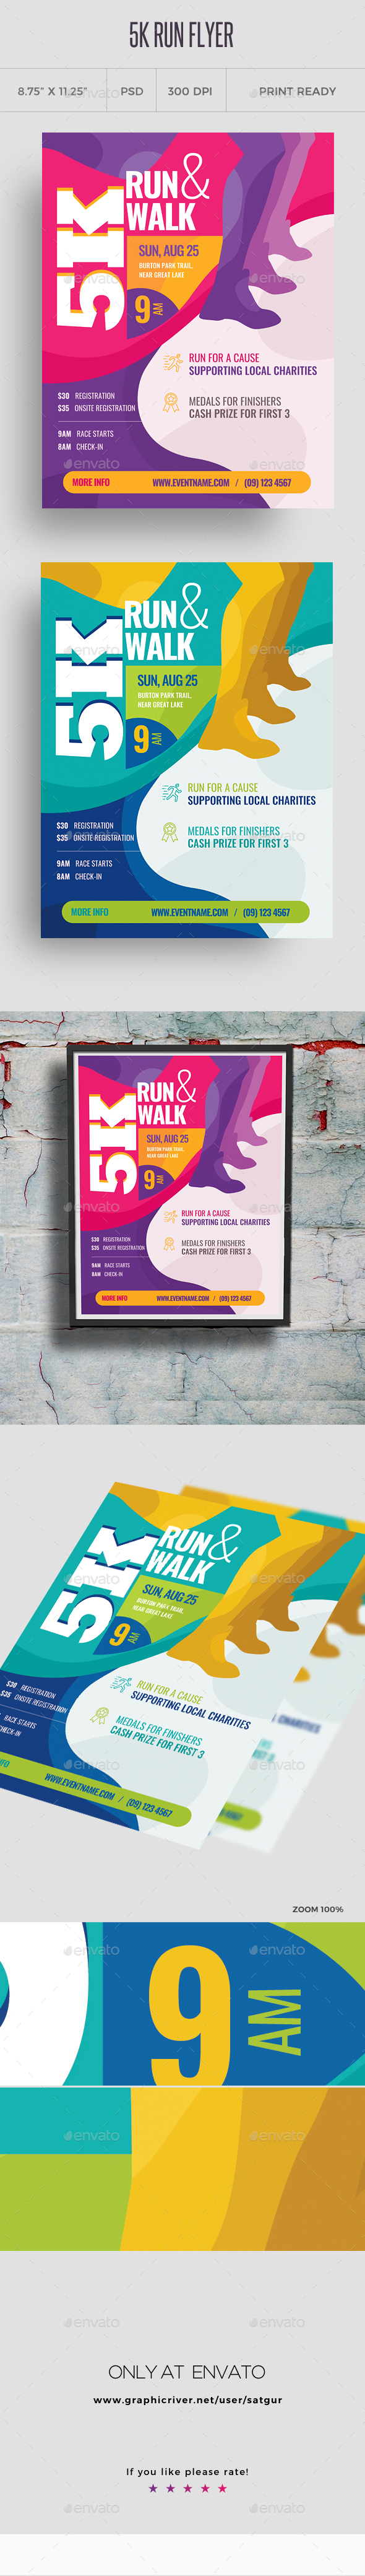 5k Run Flyer and Poster Template - Sports Events